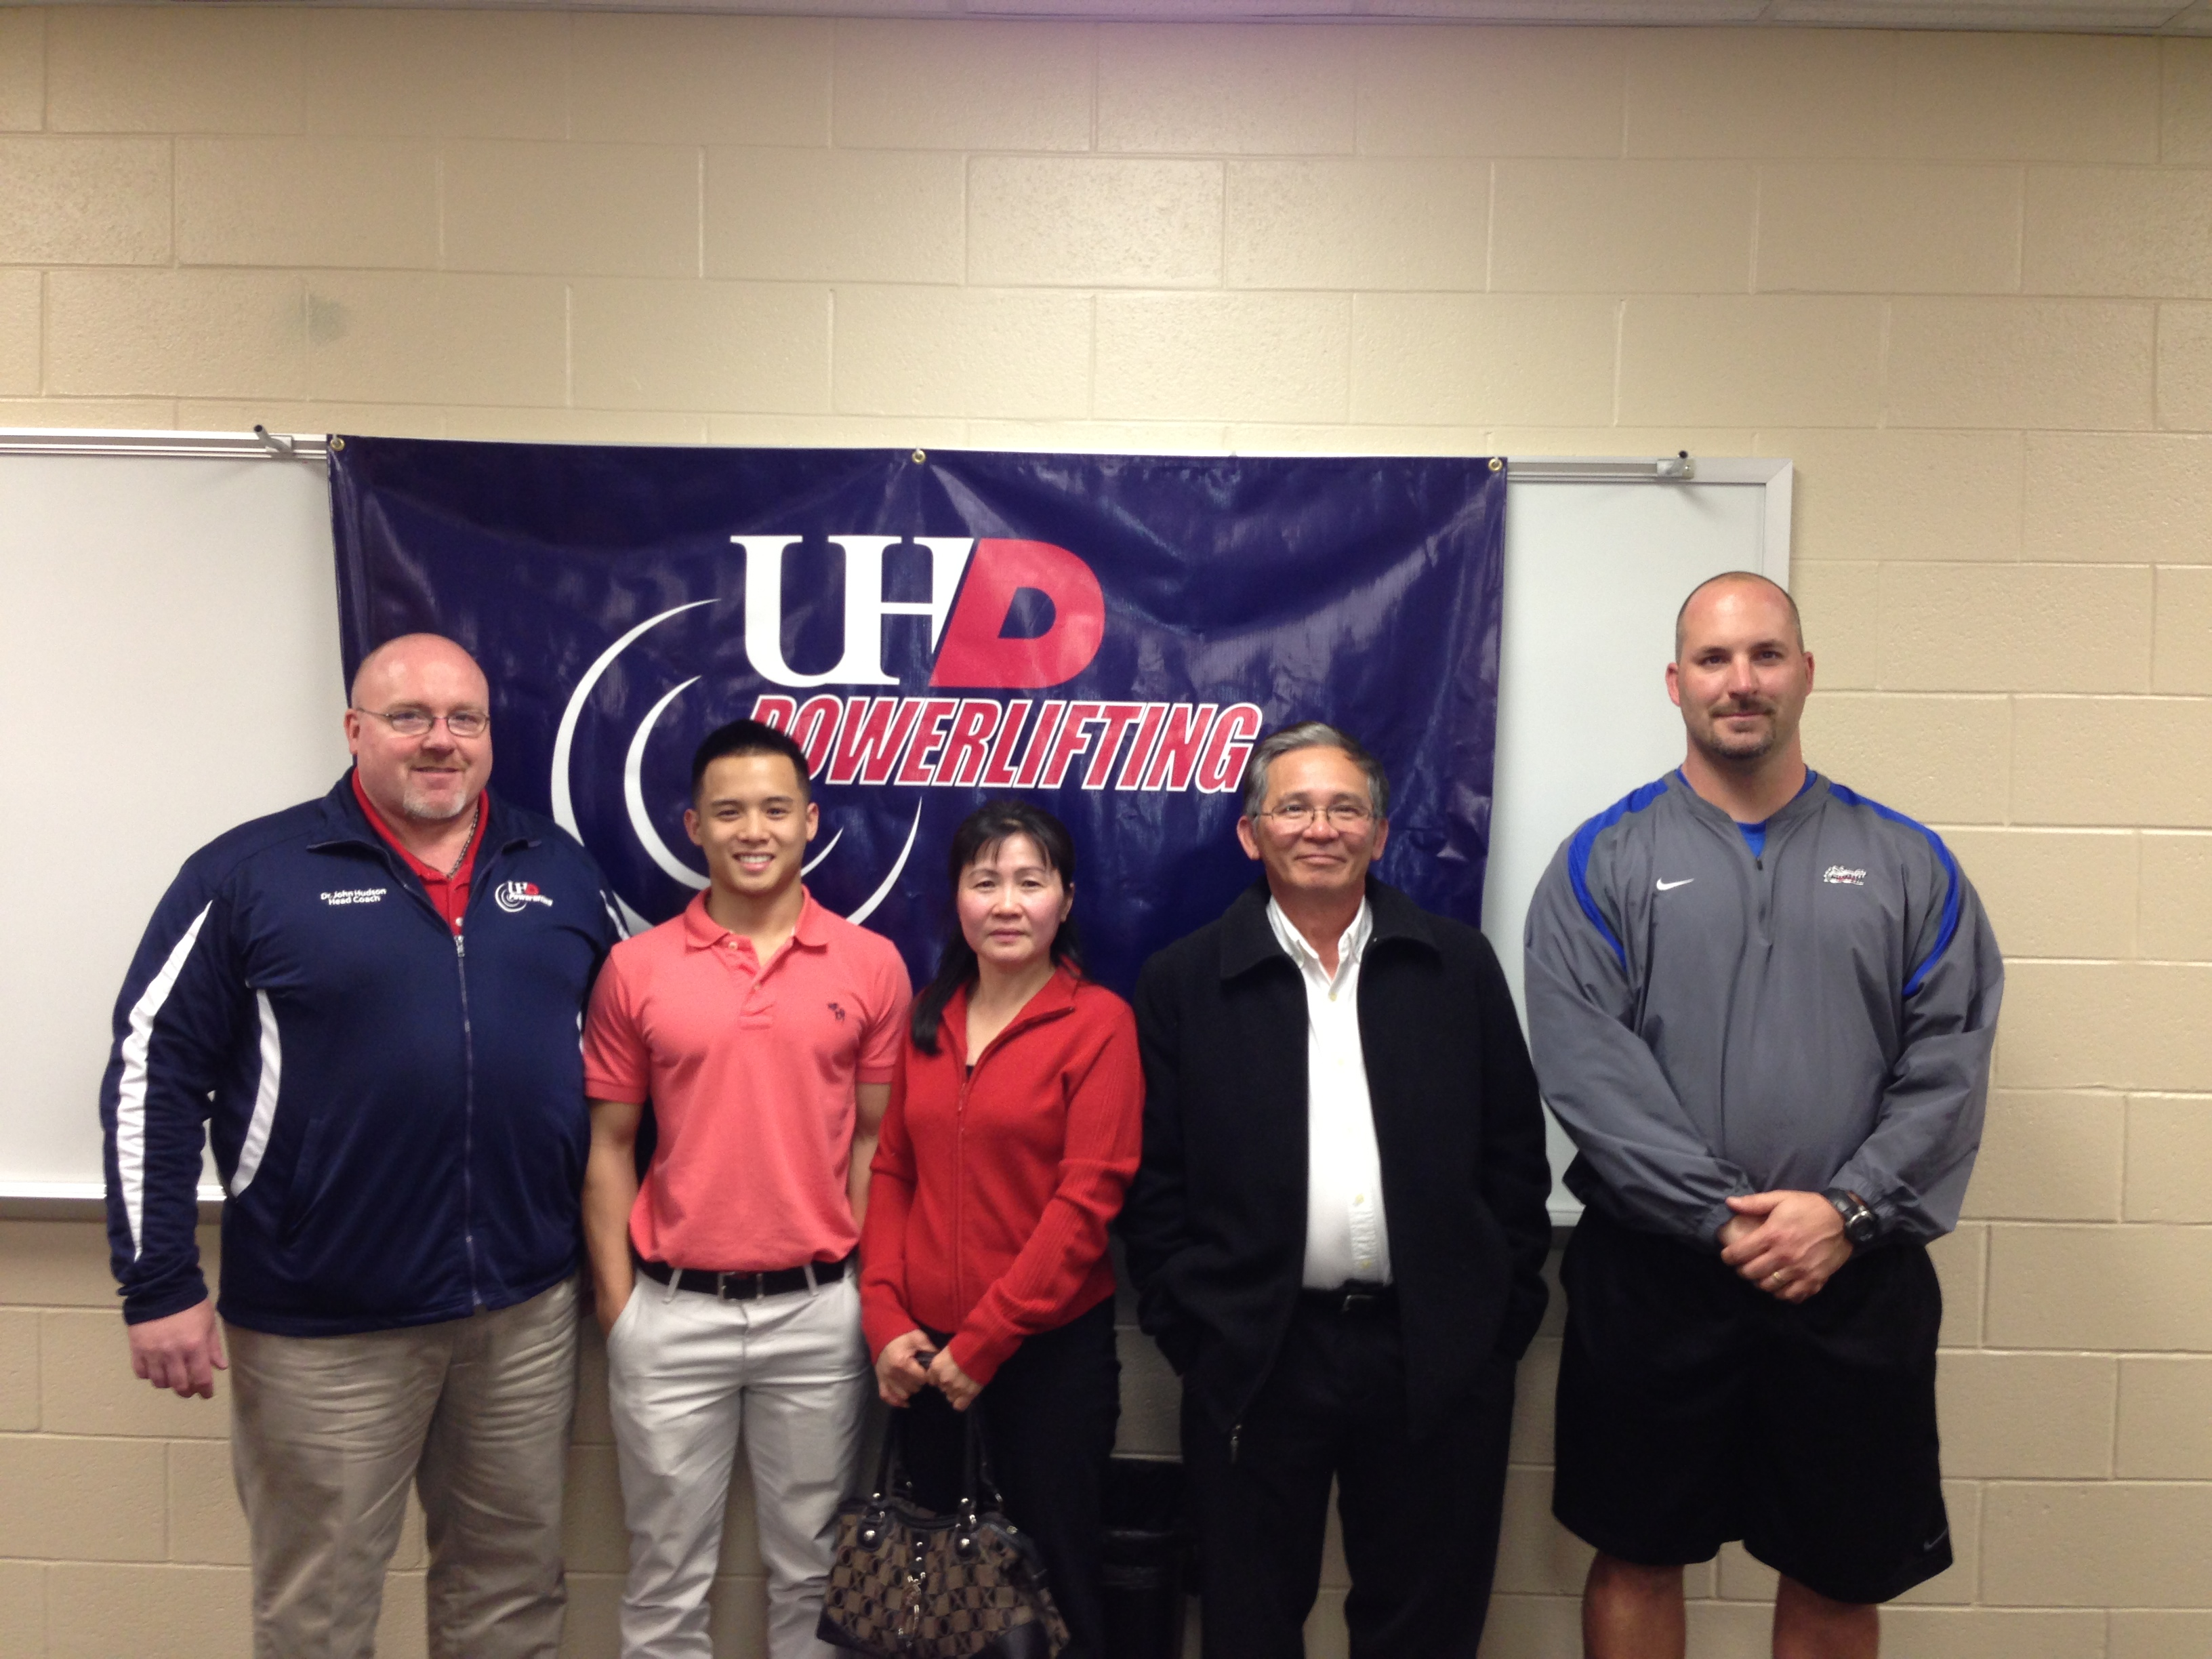 Kenny Nguyen, second from left, stnads with his family, high school coach and UHD Powerlifting Coach John Hudson, left, after signing with UHD and earning a four-year Academic Merit Scholarship.